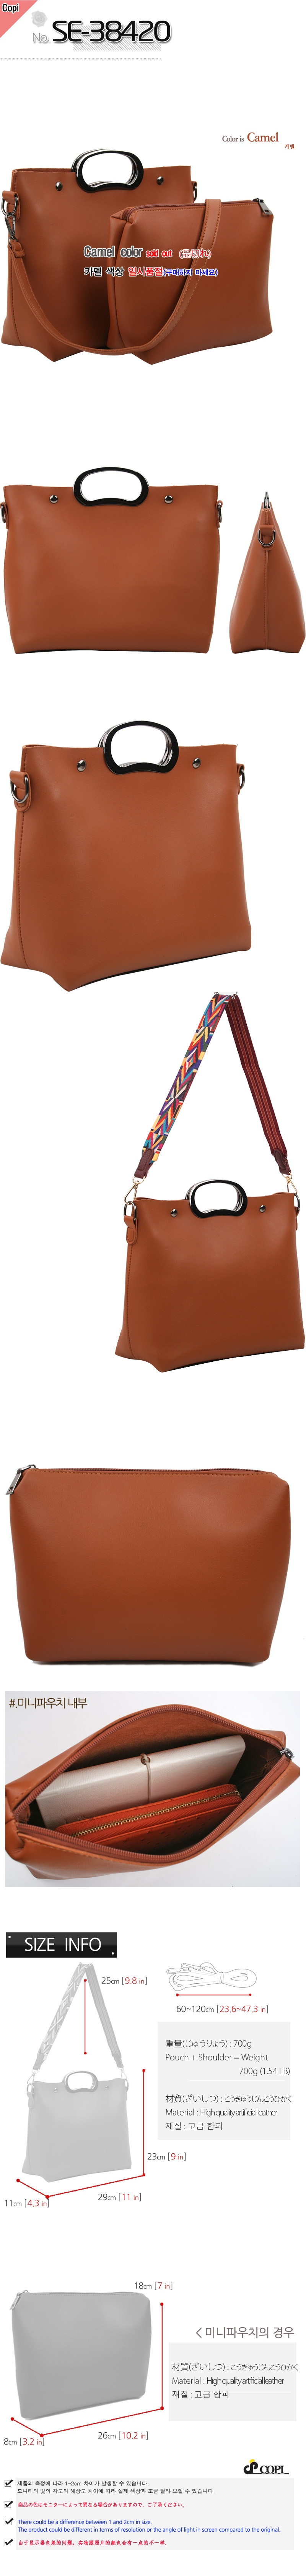 copi handbag no.SE-38420view